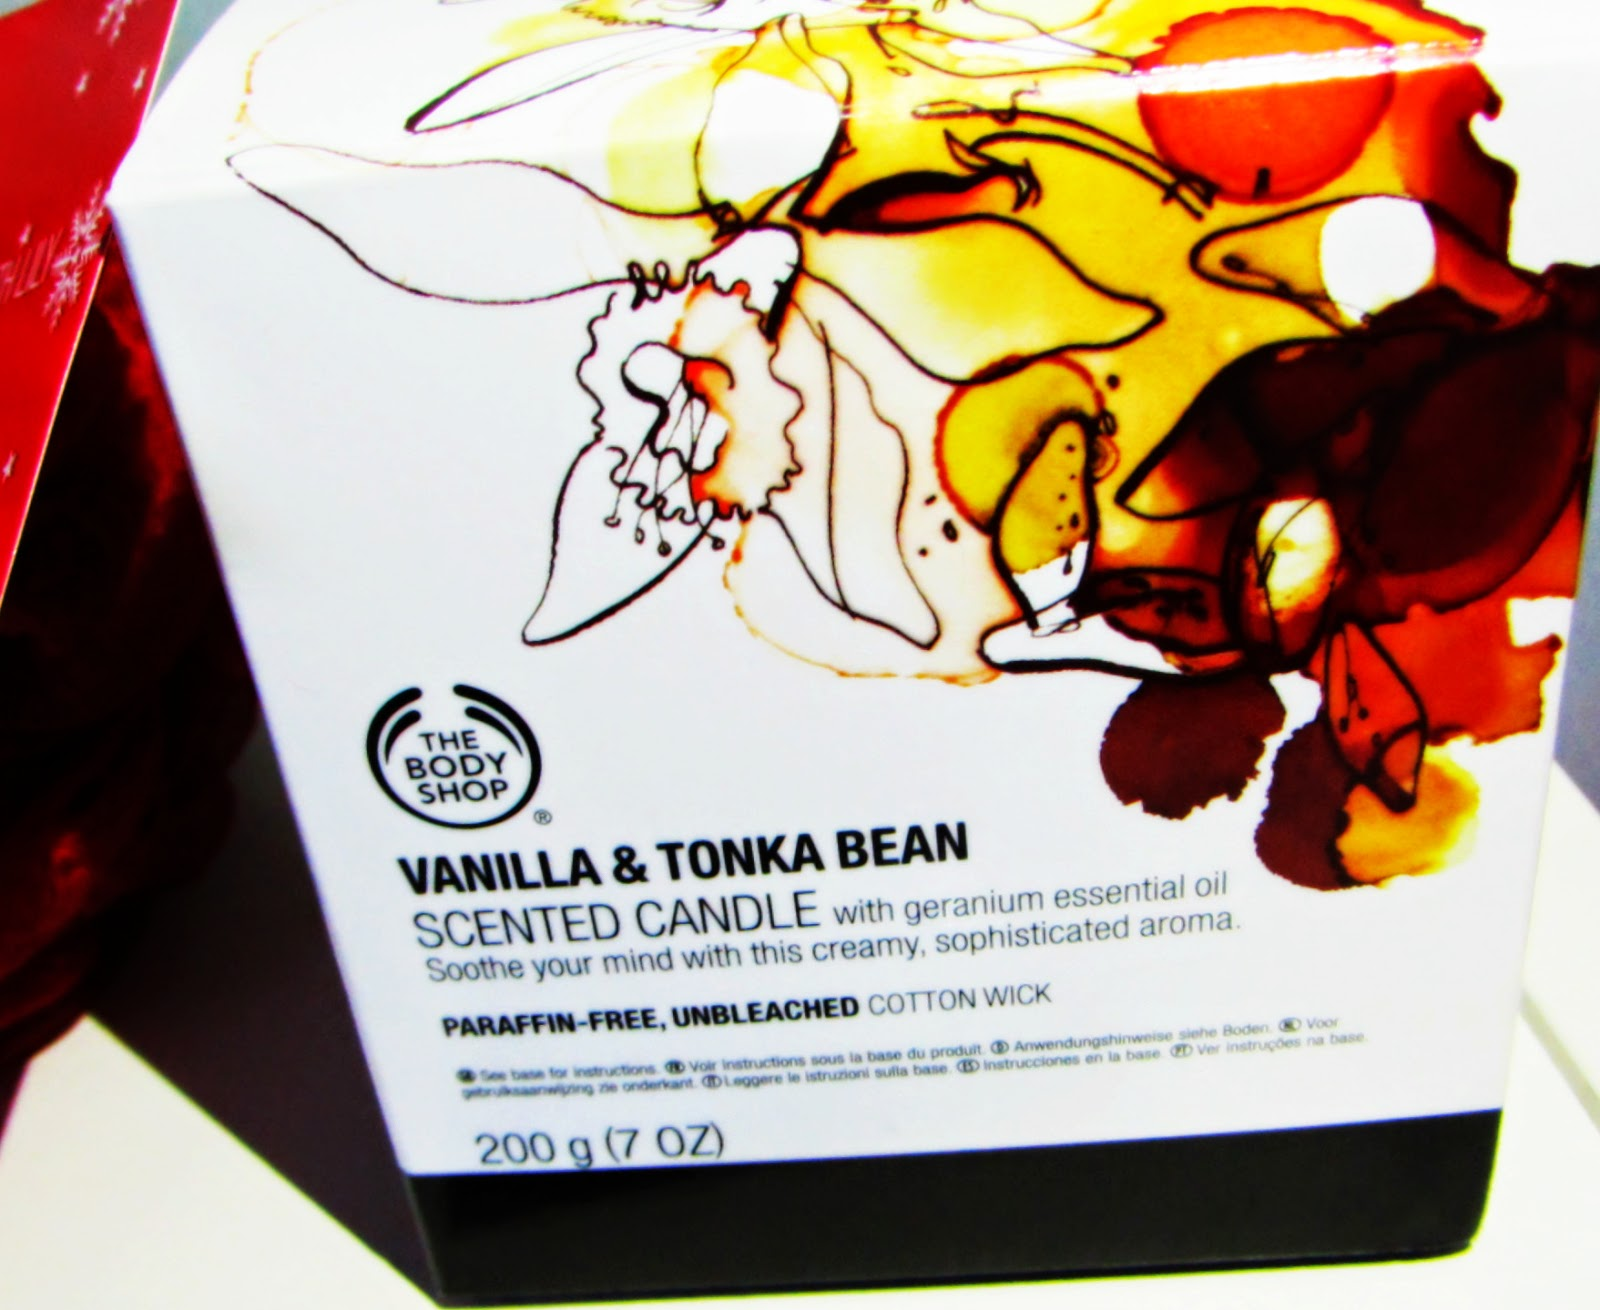 Vanilla and tonka bean scented candle by Body Shop